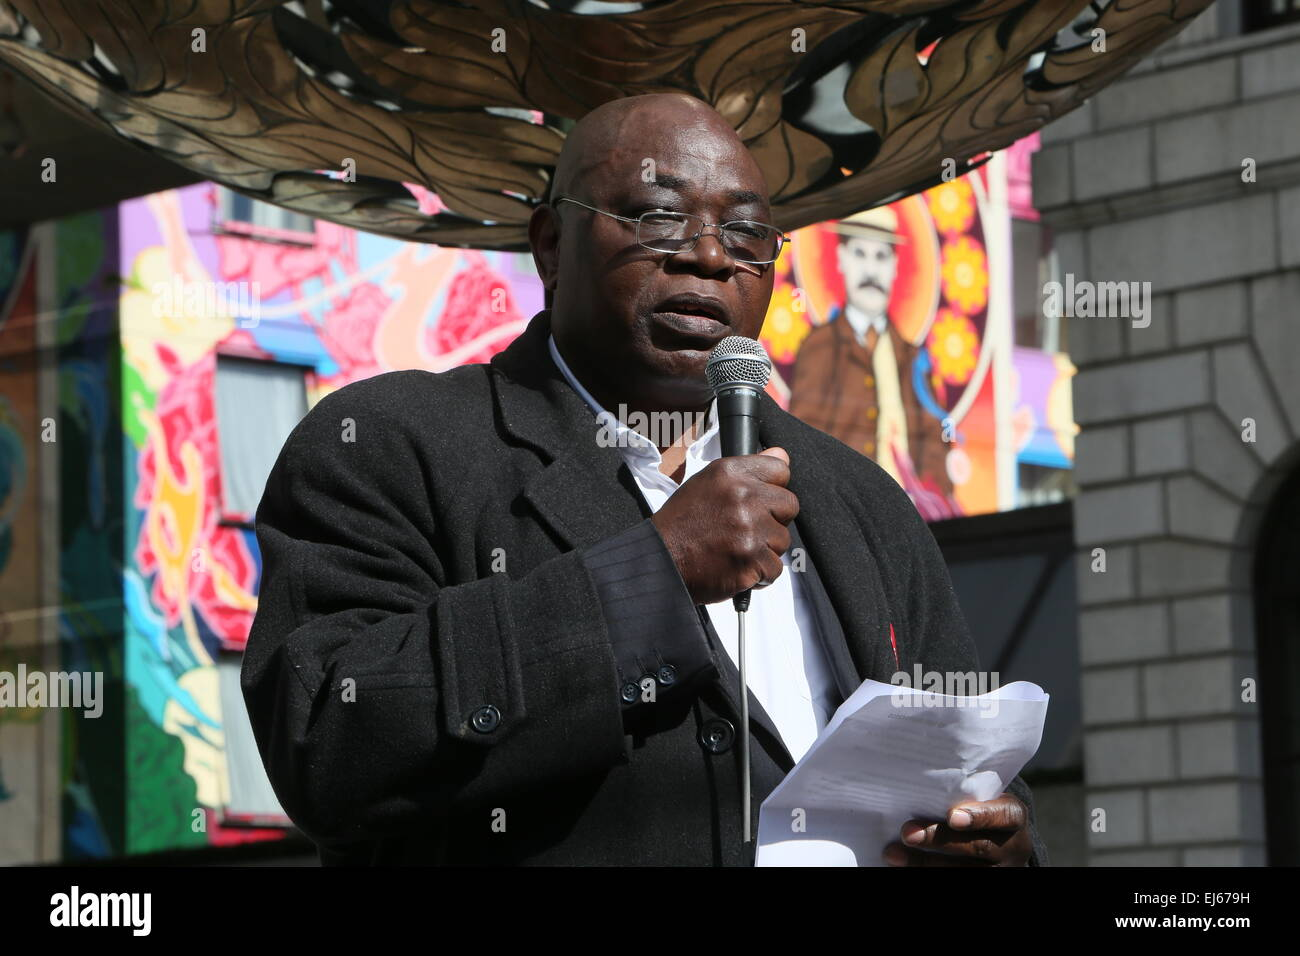 Sinn Fein Councillor Edmund Lukusa speaks during an anti-racism protest outside the Central Bank in Dublin - Stock Image